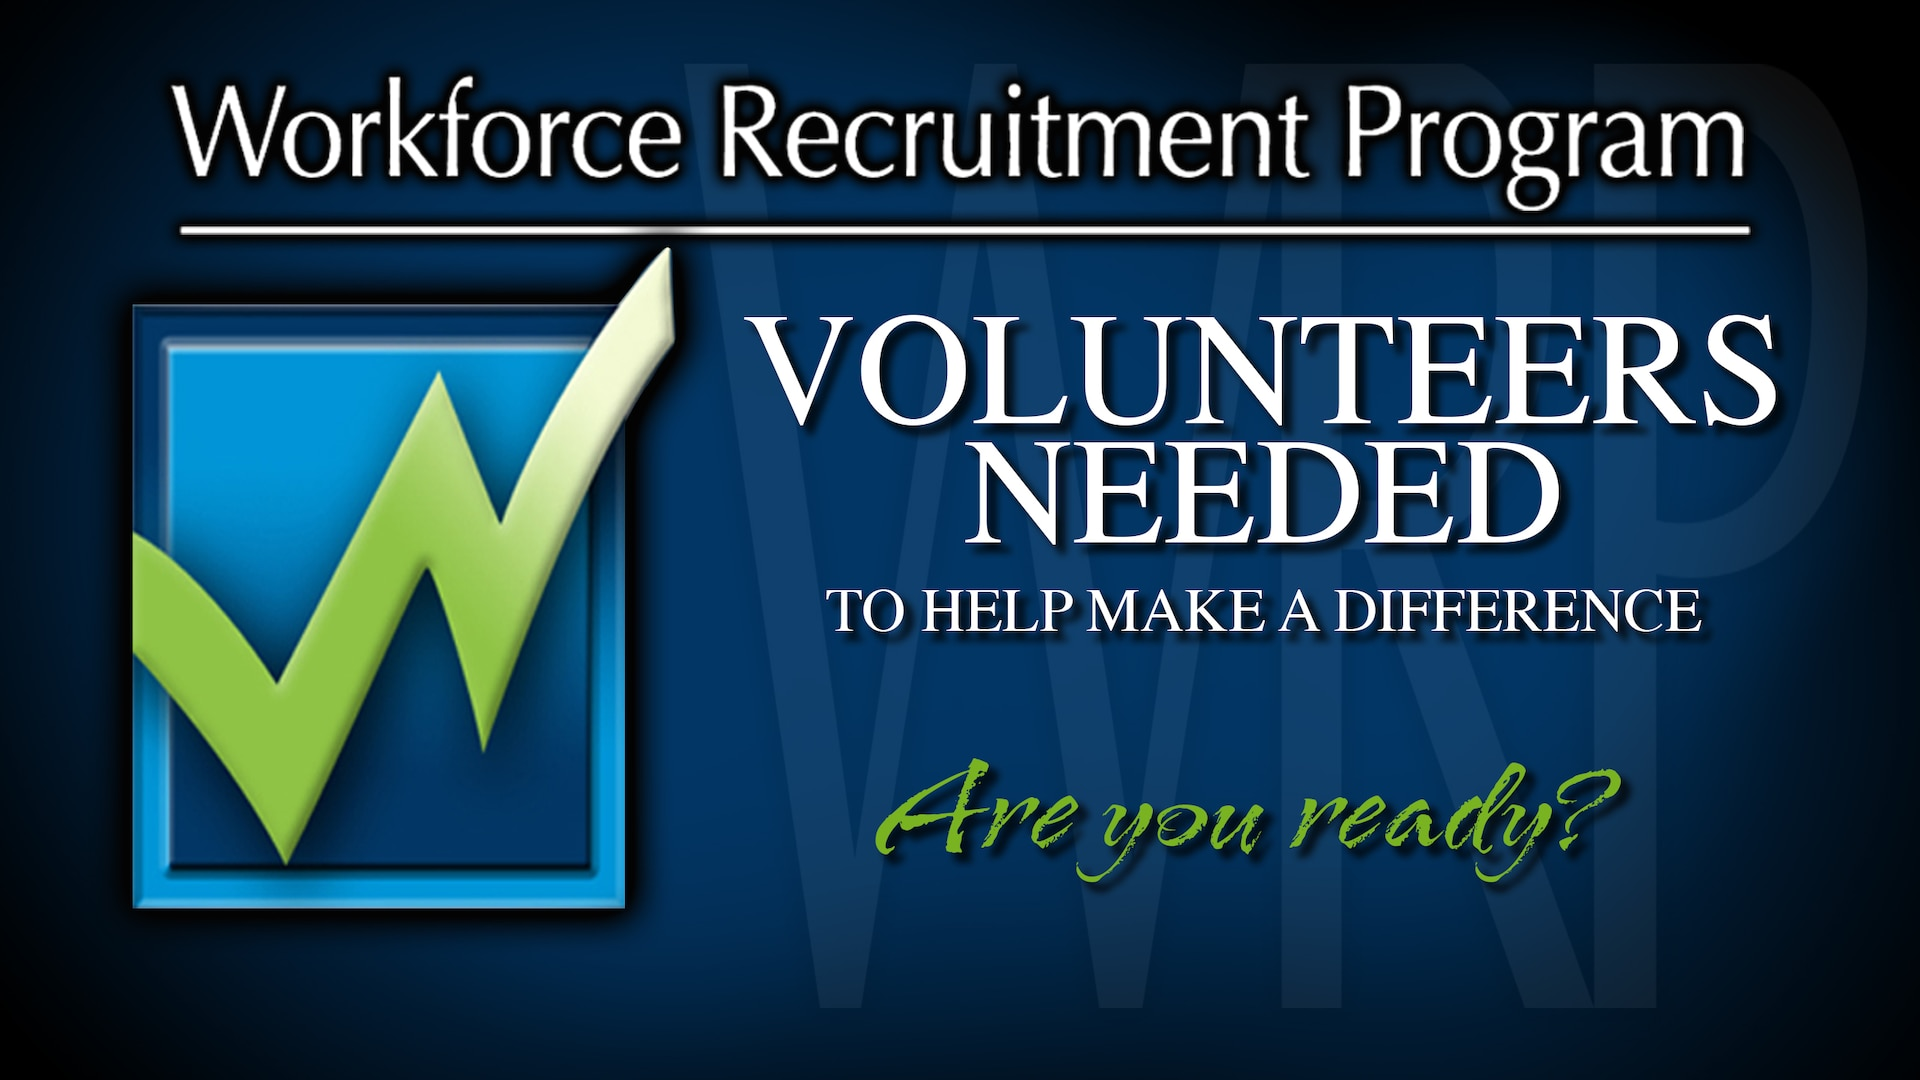 Volunteers are needed for the annual Workforce Recruitment Program that places prescreened college students and recent graduates with disabilities in 14-week internships at federal agencies.